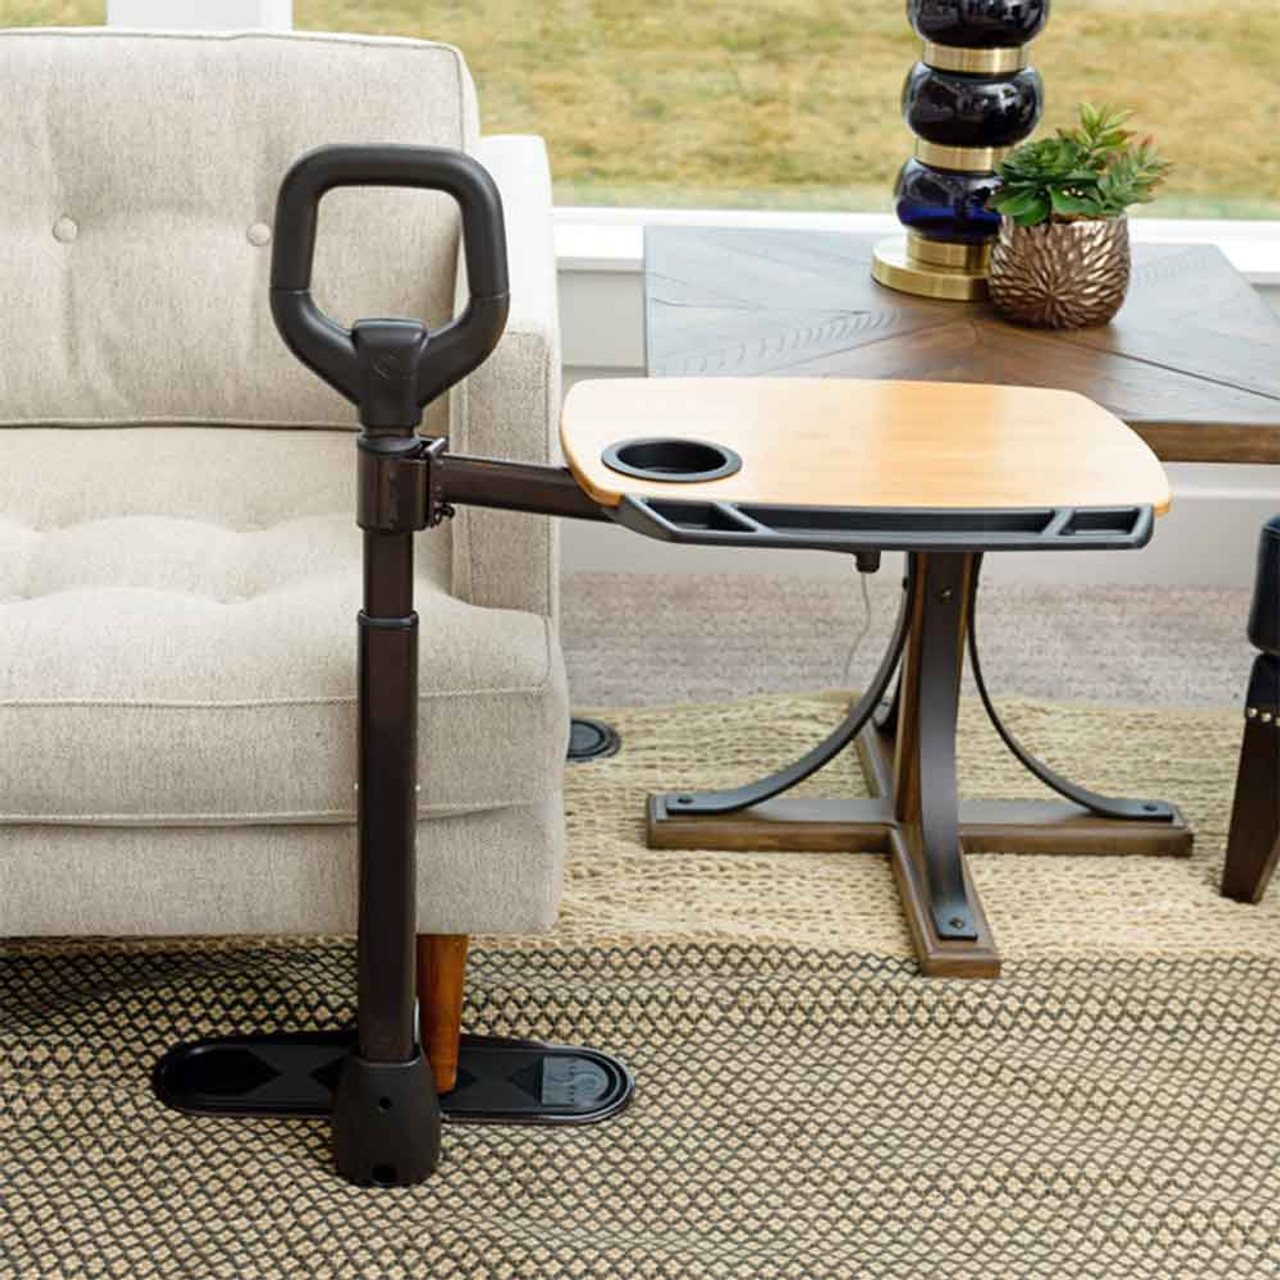 Couch Swivel Tray with Cane CSACT1 Lounge